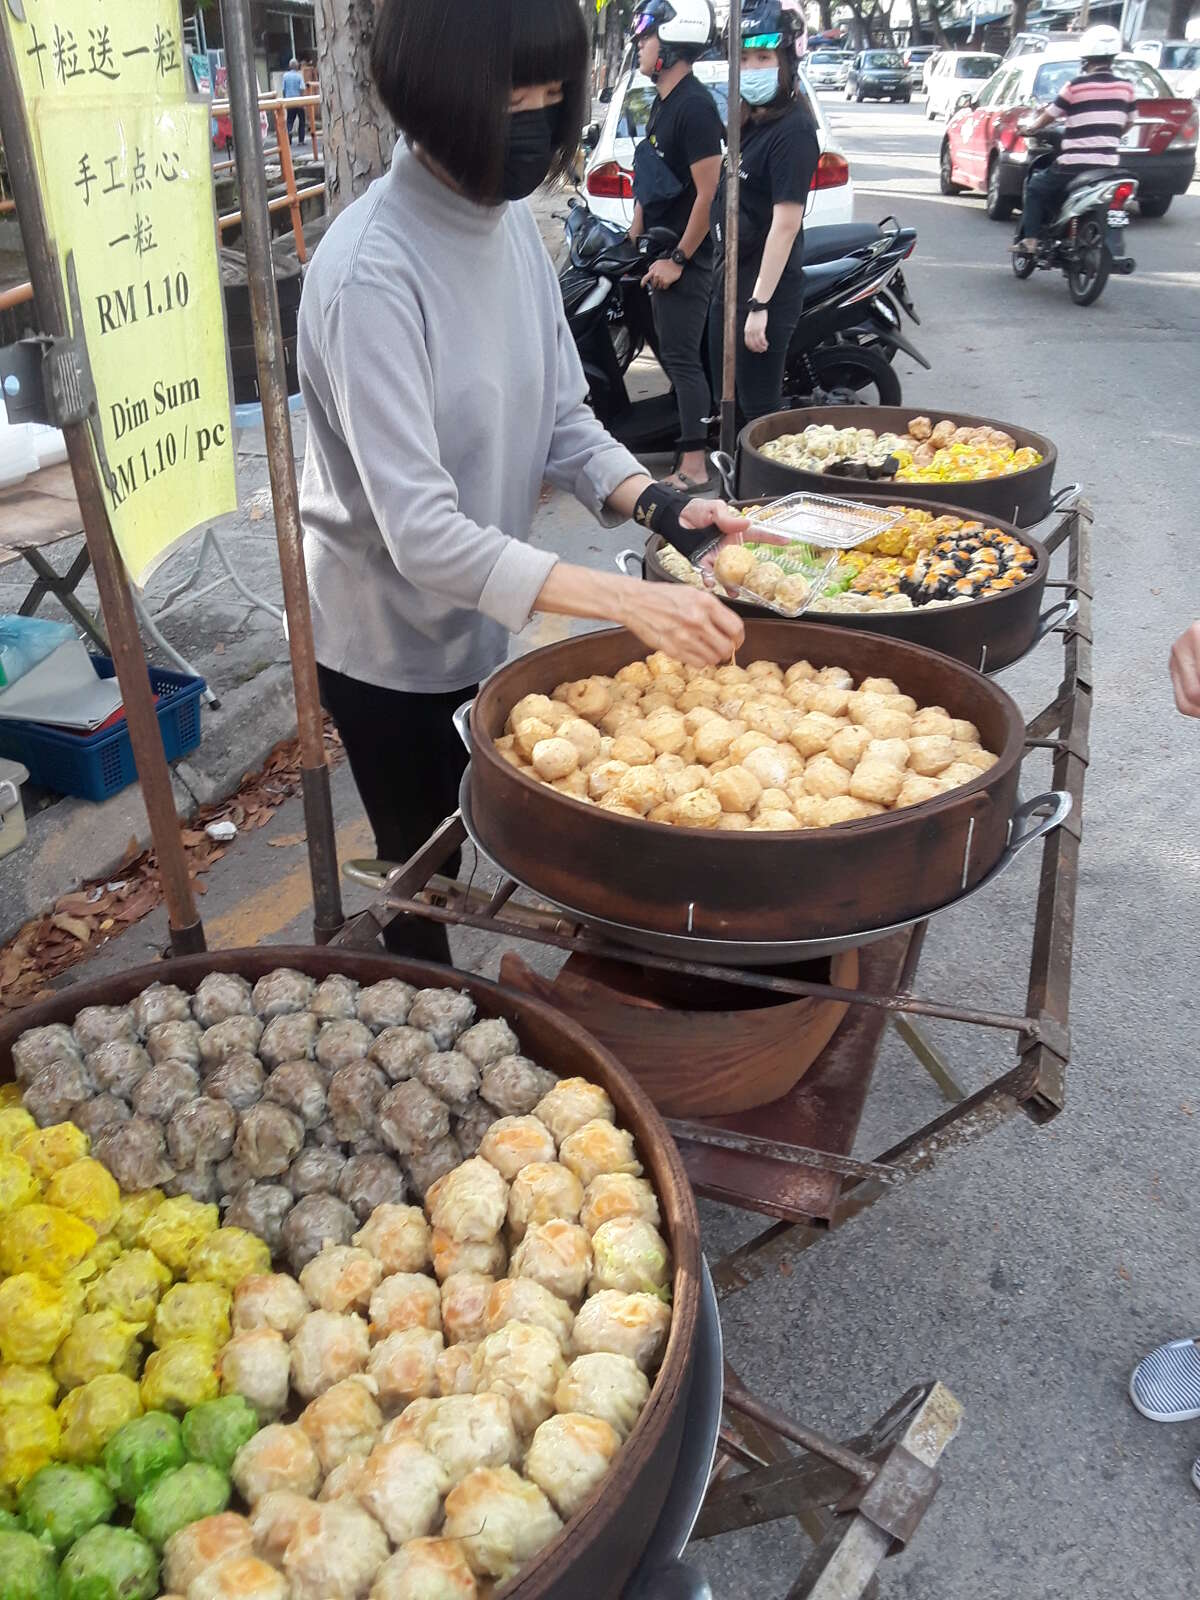 Reader Thomas Blakeney sent photos from his February 2020 trip to Vietnam, Malaysia and Hong Kong in the height of the coronavirus crisis.